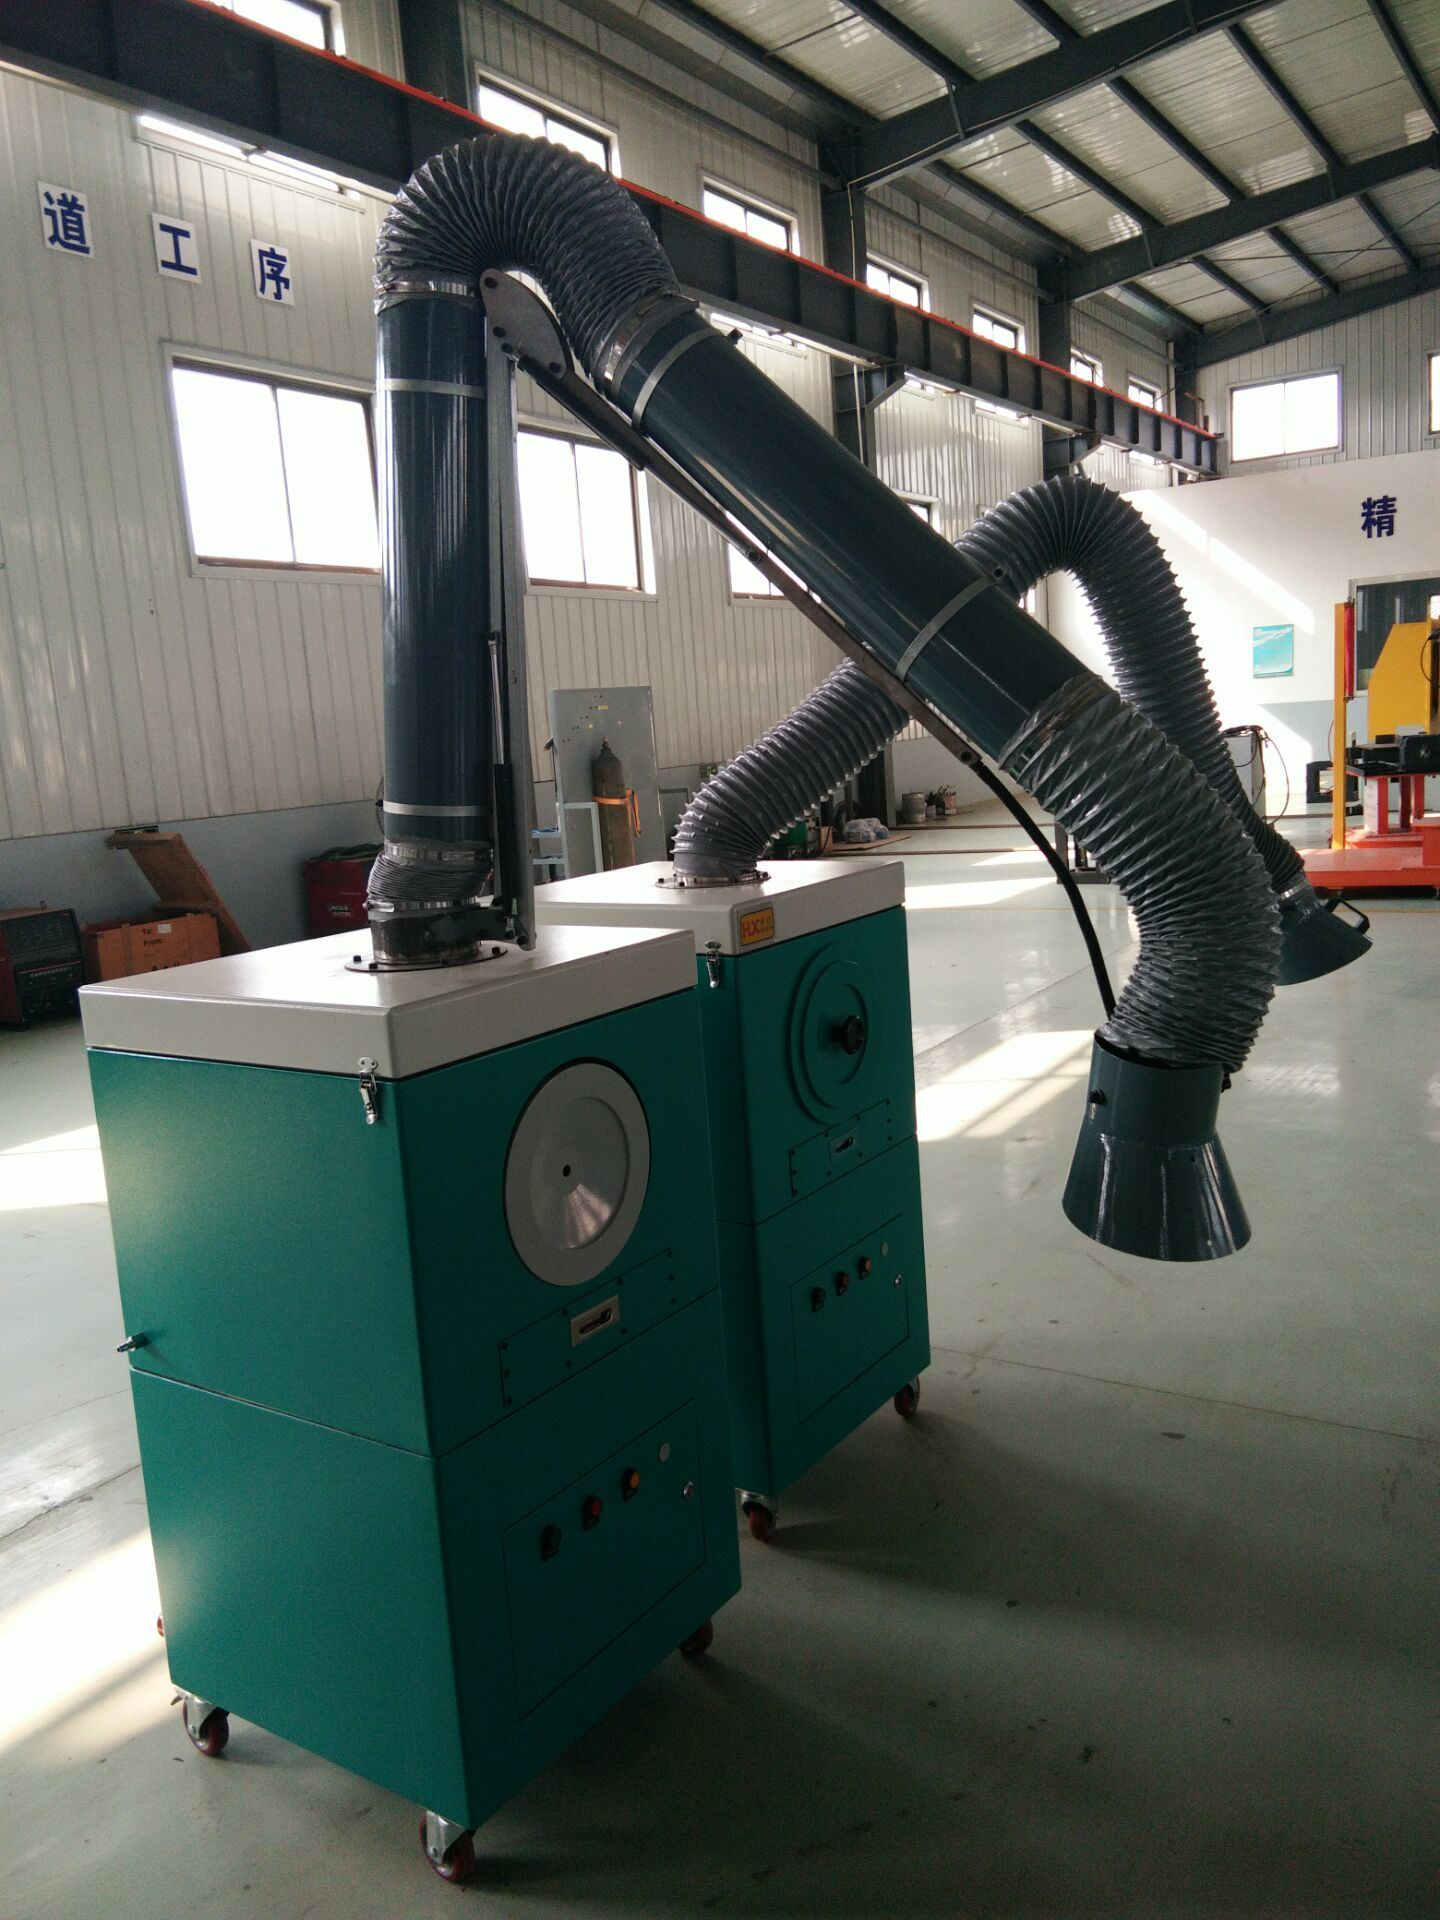 Self Cleaning Portable Fume Extractor/Portable Welding Collector/Welding Dust Collection